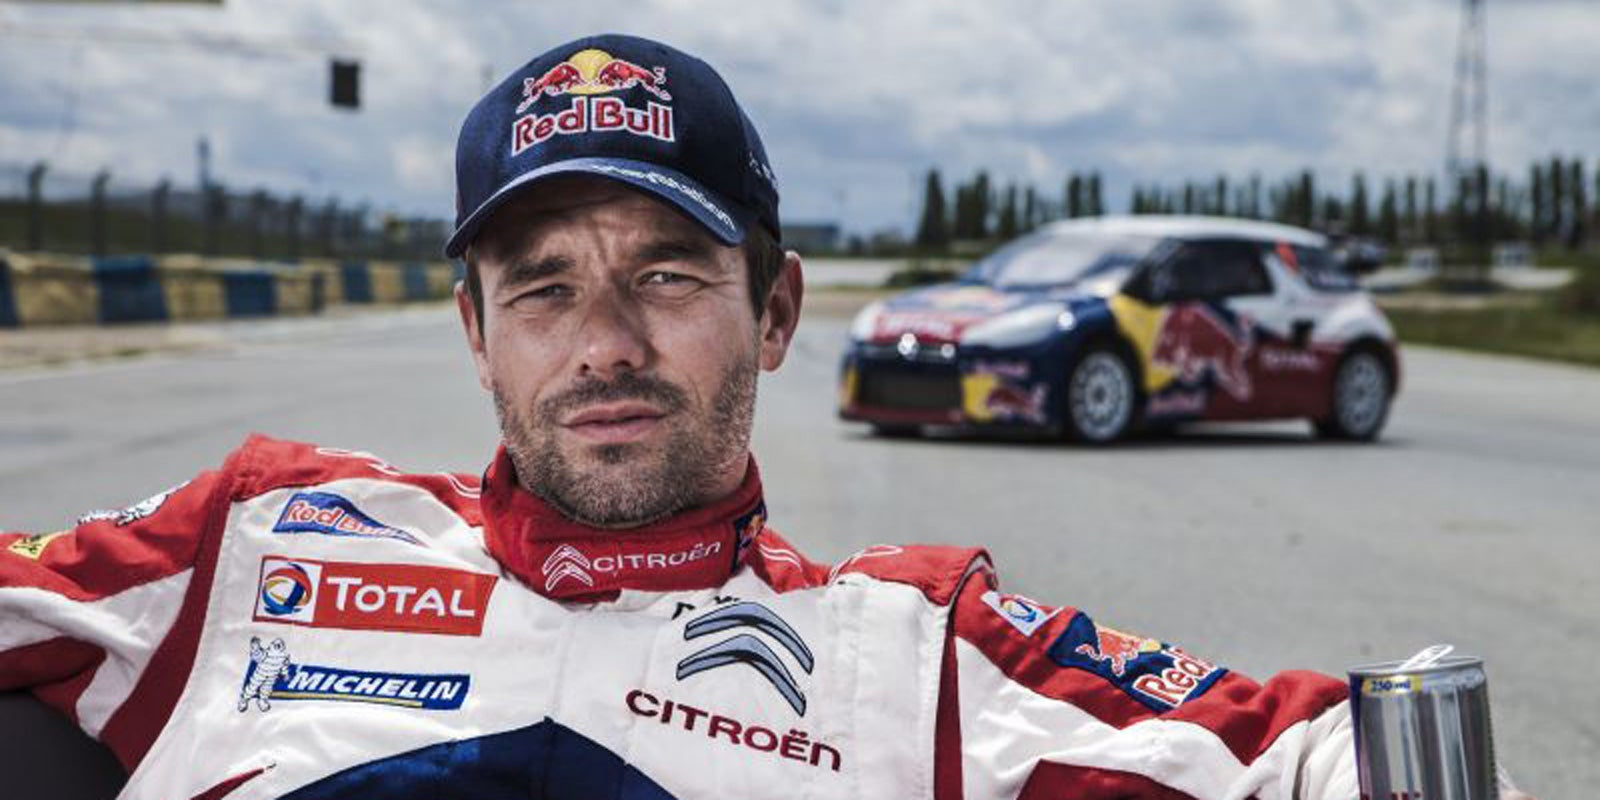 Sébastien Loeb earned a  million dollar salary - leaving the net worth at 4 million in 2017